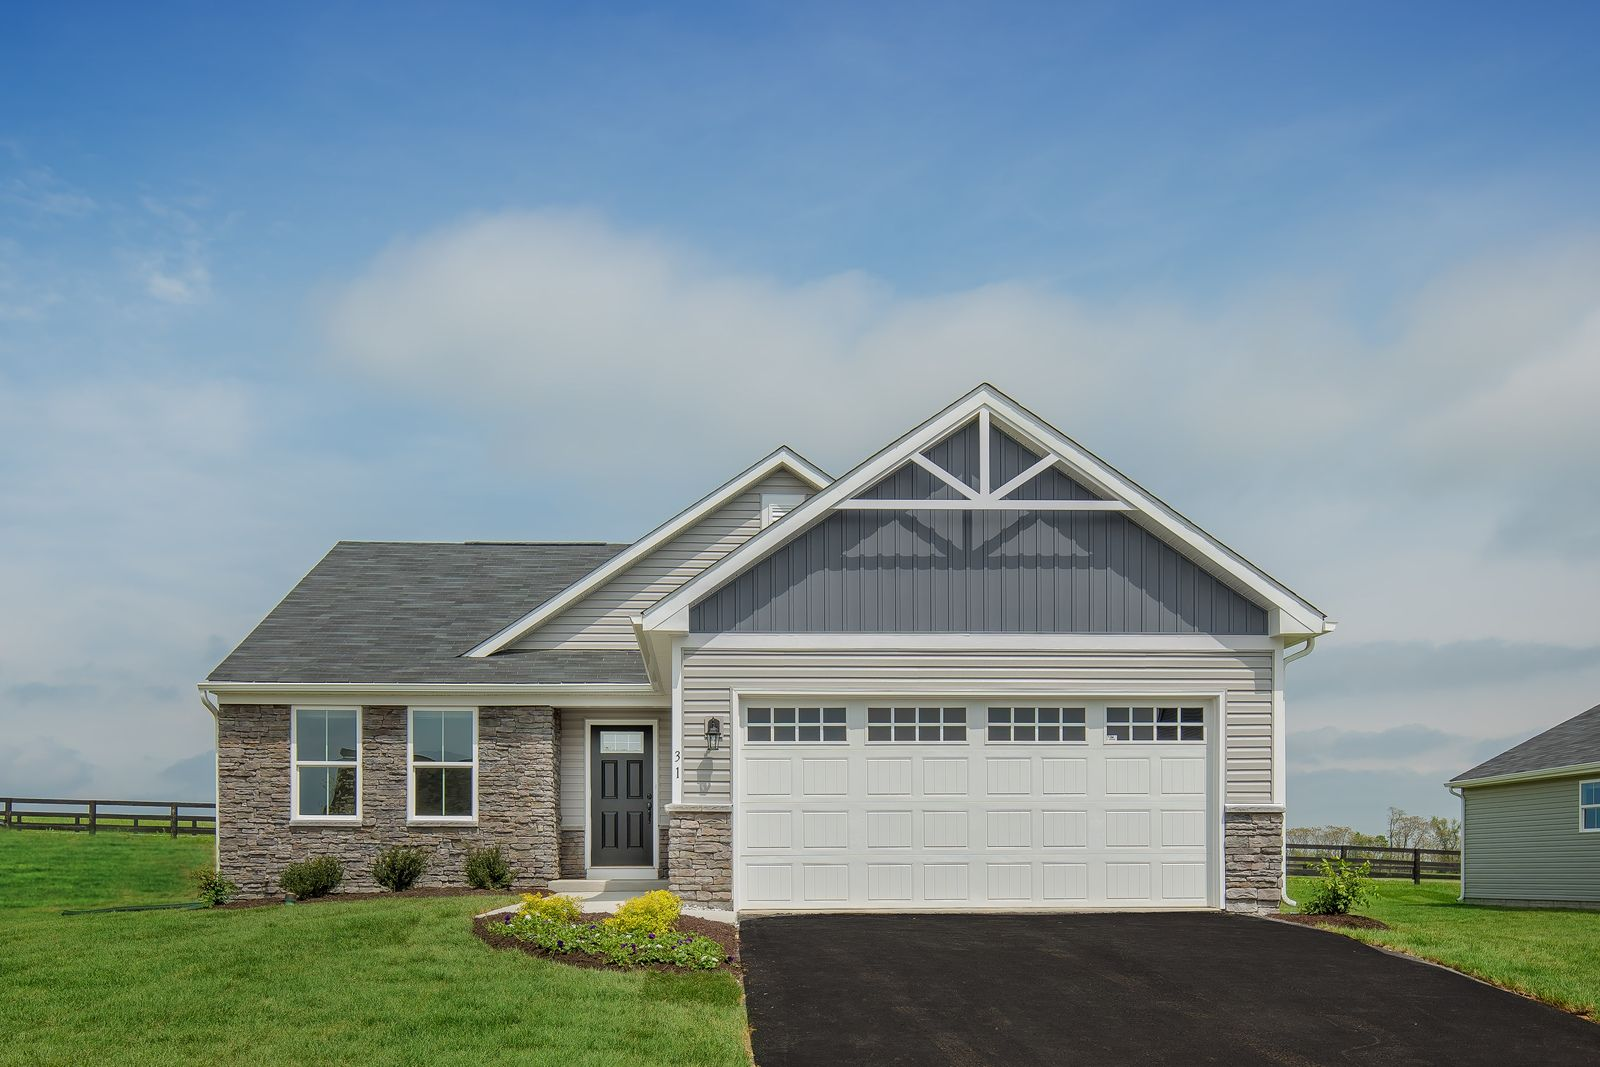 Easy One Level Living is Here!:The lowest priced new ranch home community in Washington County with lawn care and snow removal included, near I-79 & shopping.Click hereto schedule an appointment.